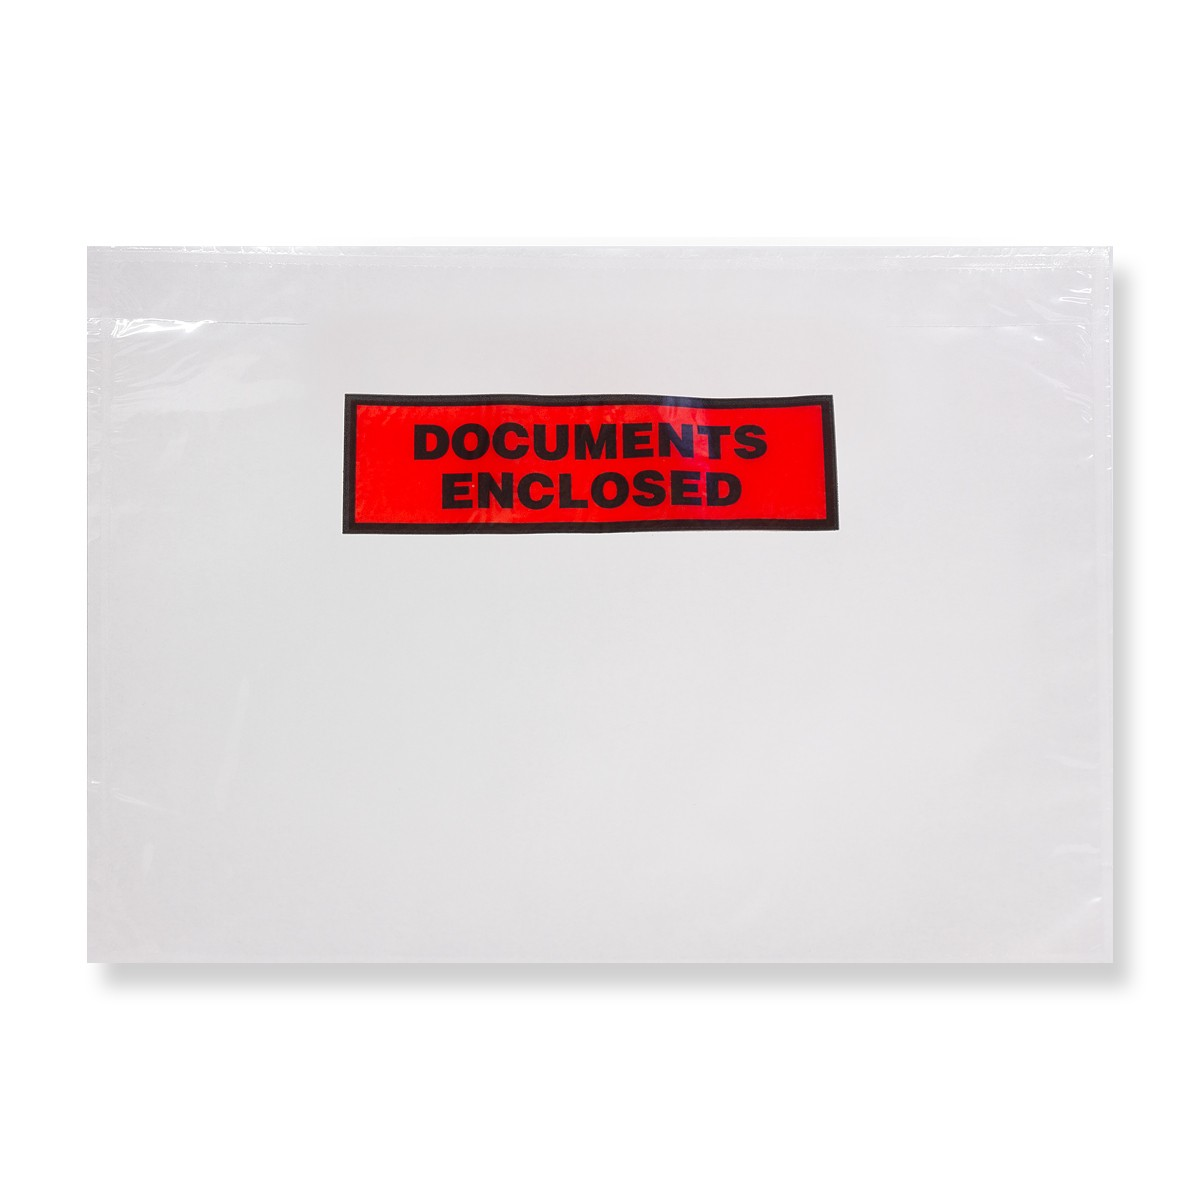 315 x 235mm CLEAR DOCUMENTS ENCLOSED WALLETS PRINTED